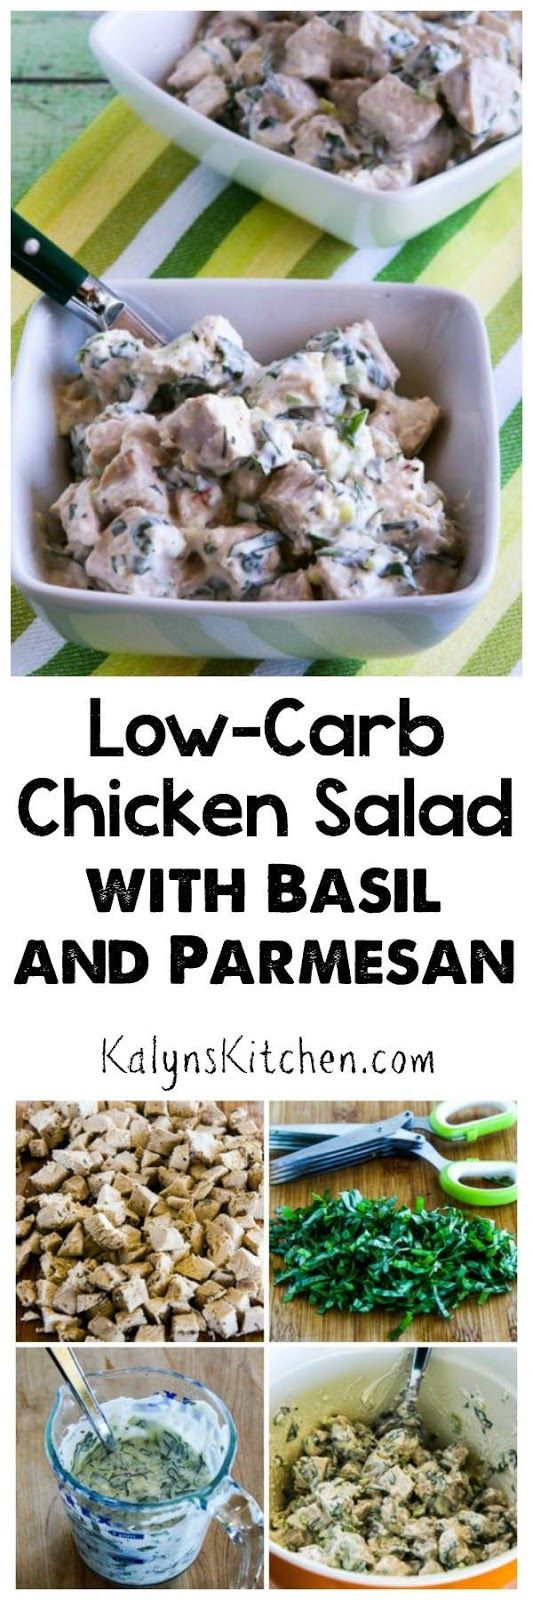 Low-Carb Chicken Salad with Basil and Parmesan | Gardens ...